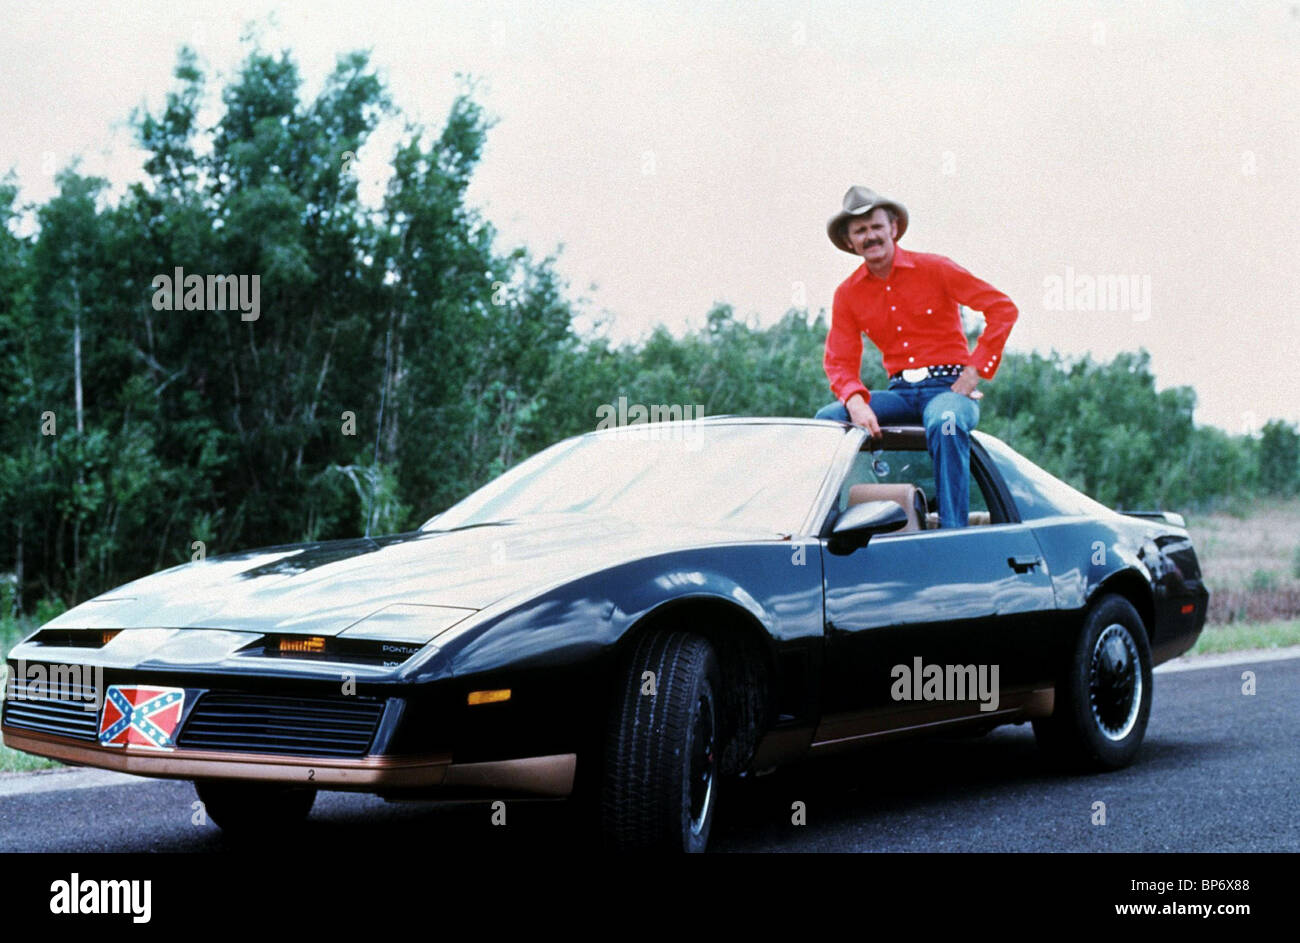 Jerry reed smokey and the bandit part 3 1983 stock image